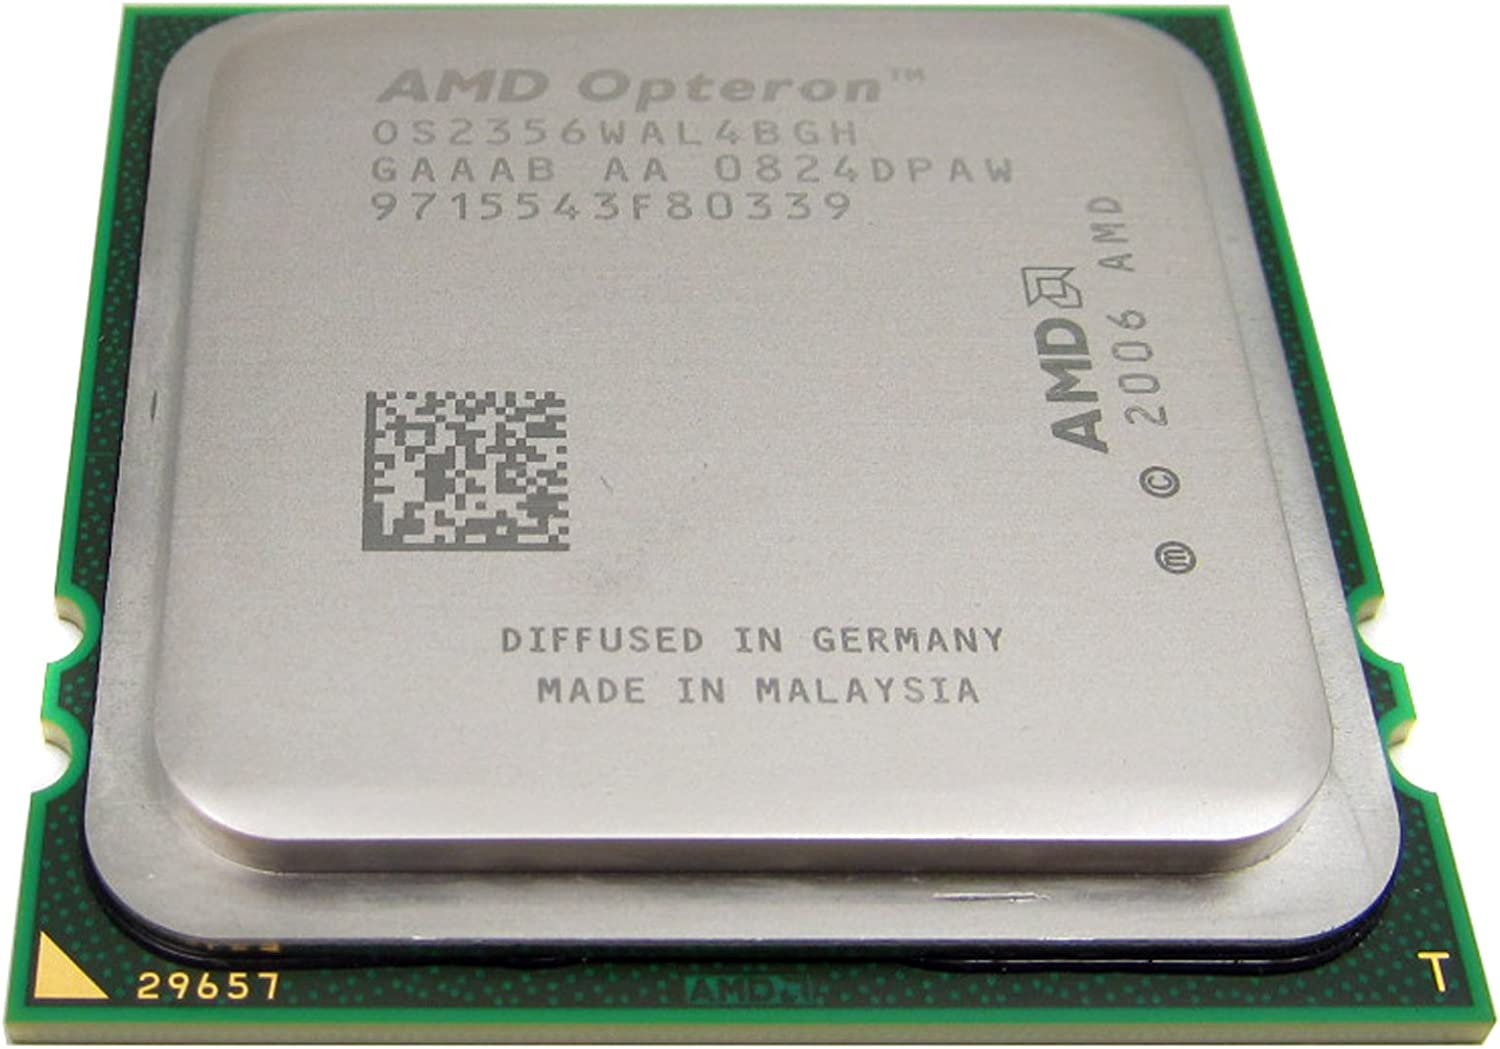 Amazon Com Amd Opteron Quad Core 2356 2 30ghz Processor Os2356wal4bgh Computers Accessories